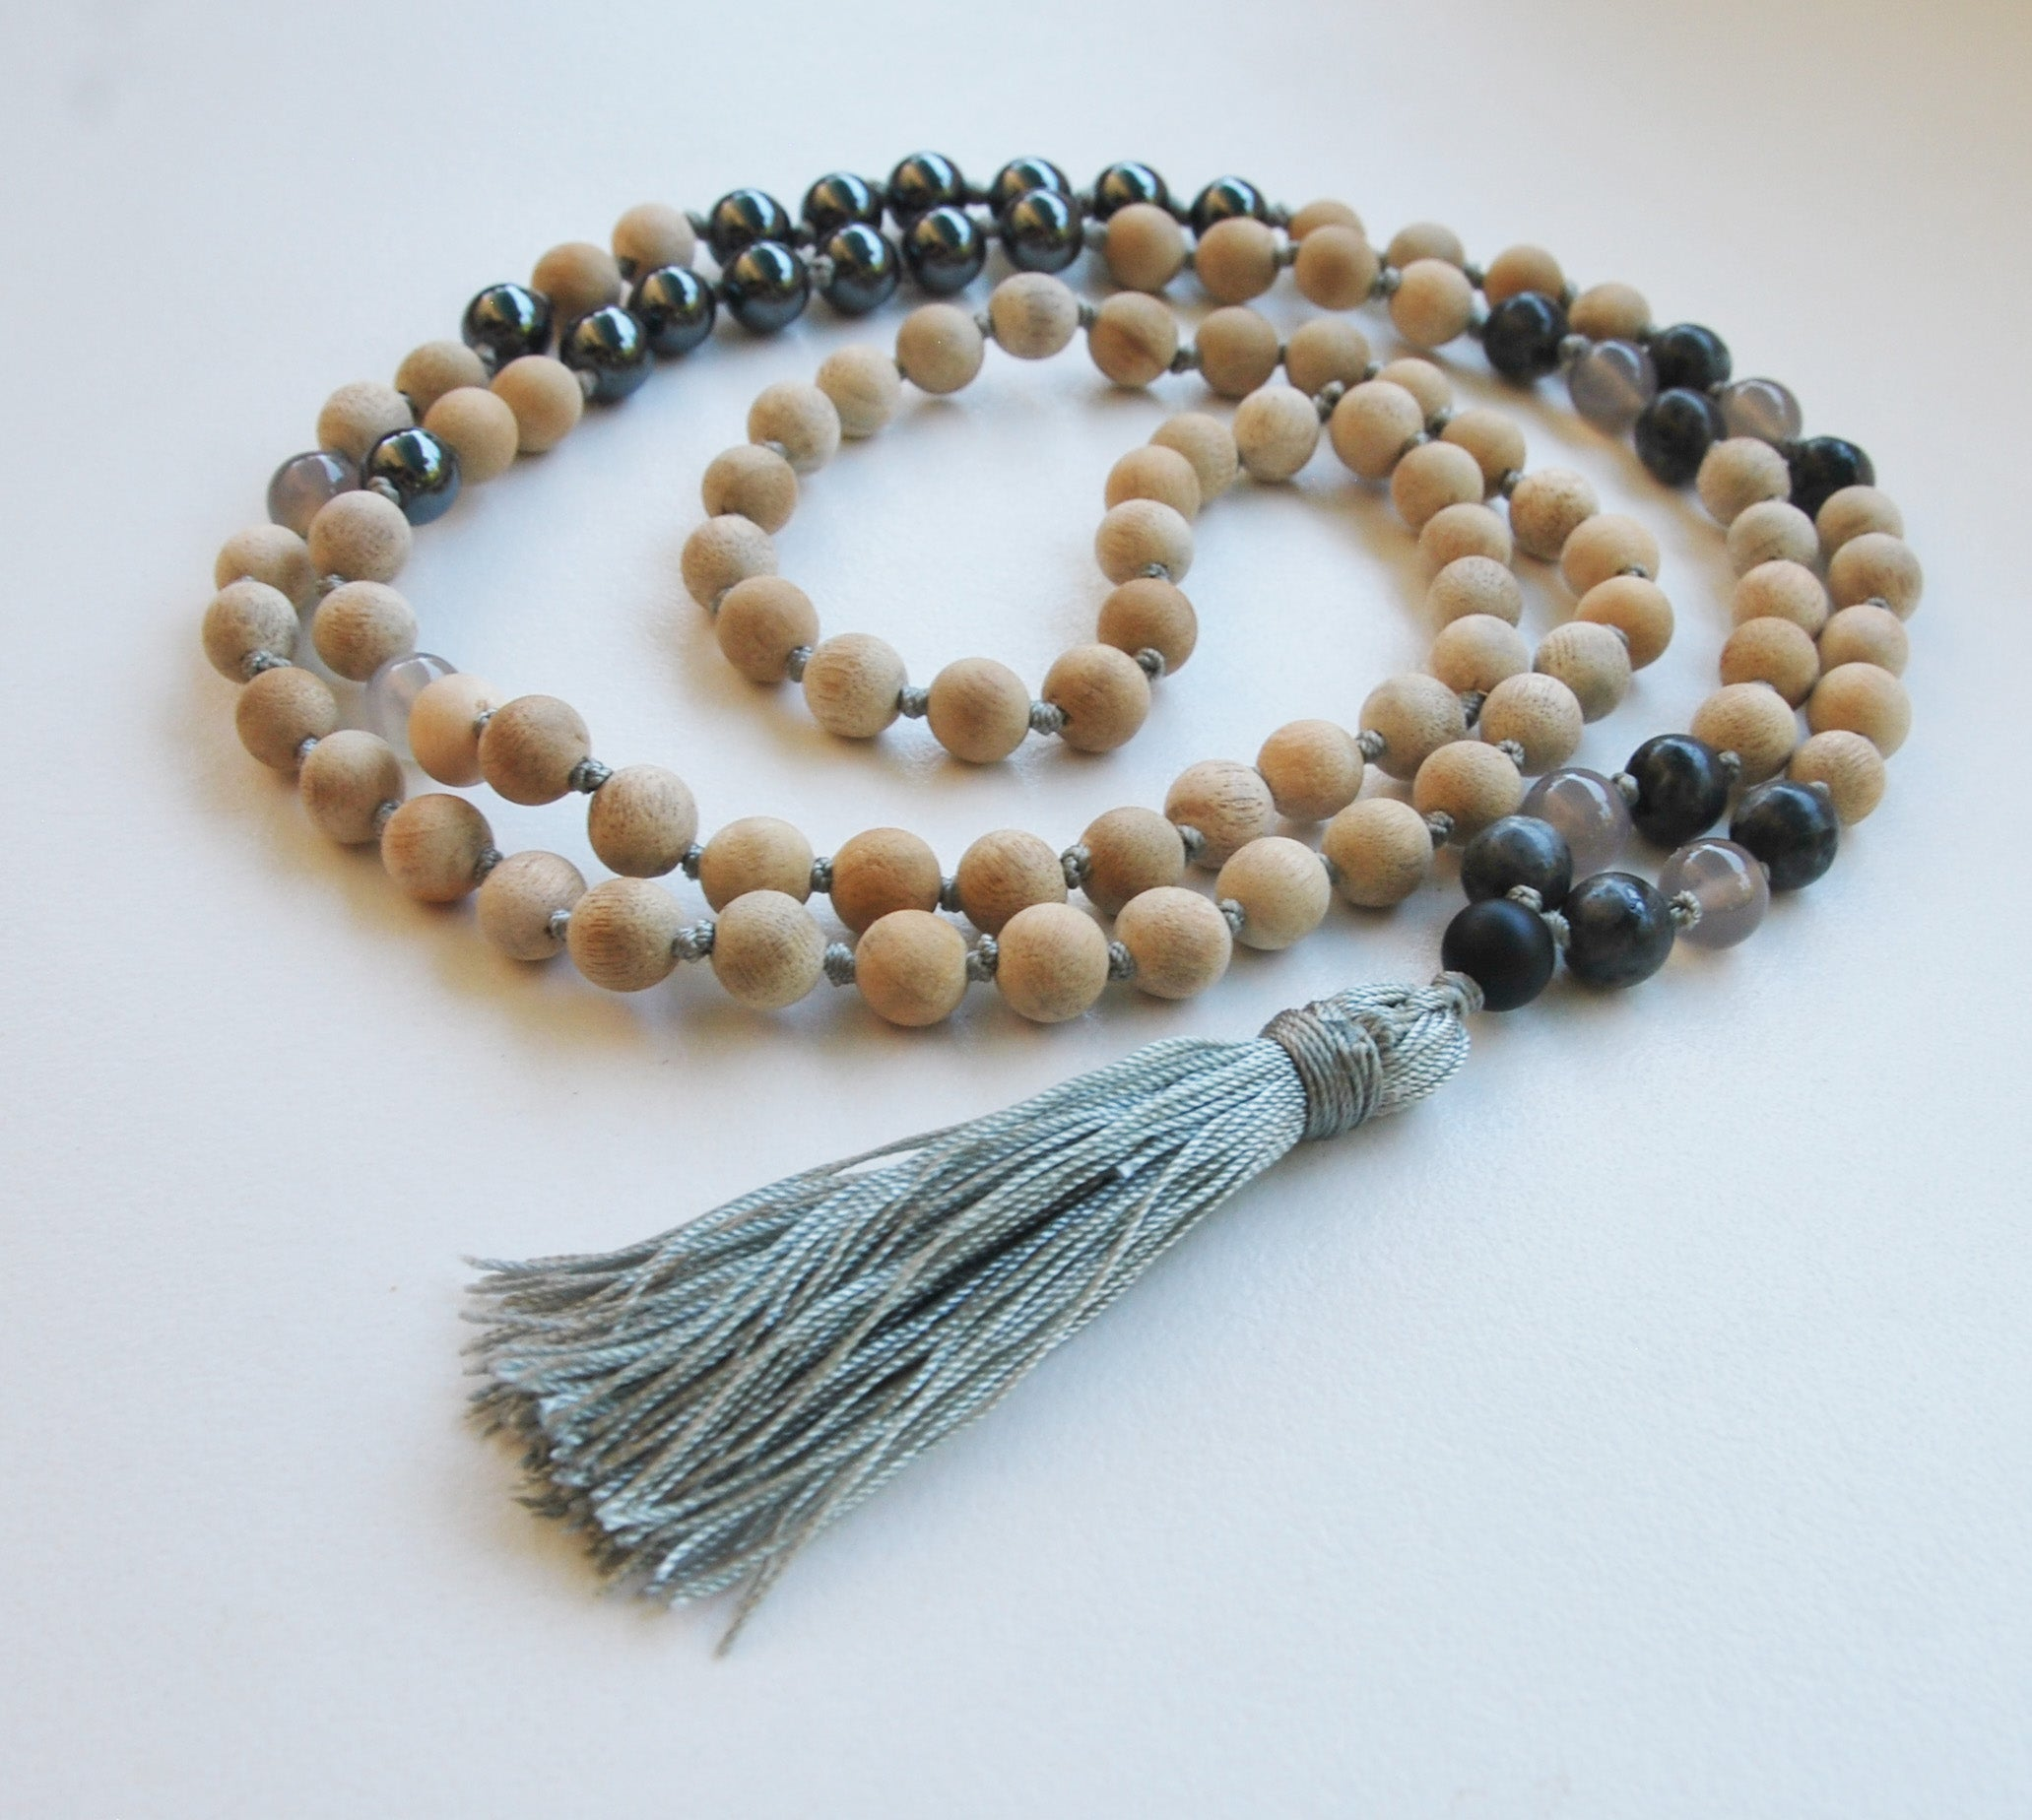 8mm Sandalwood & Hematite 108 Knotted Mala Necklace with Colored Tassel